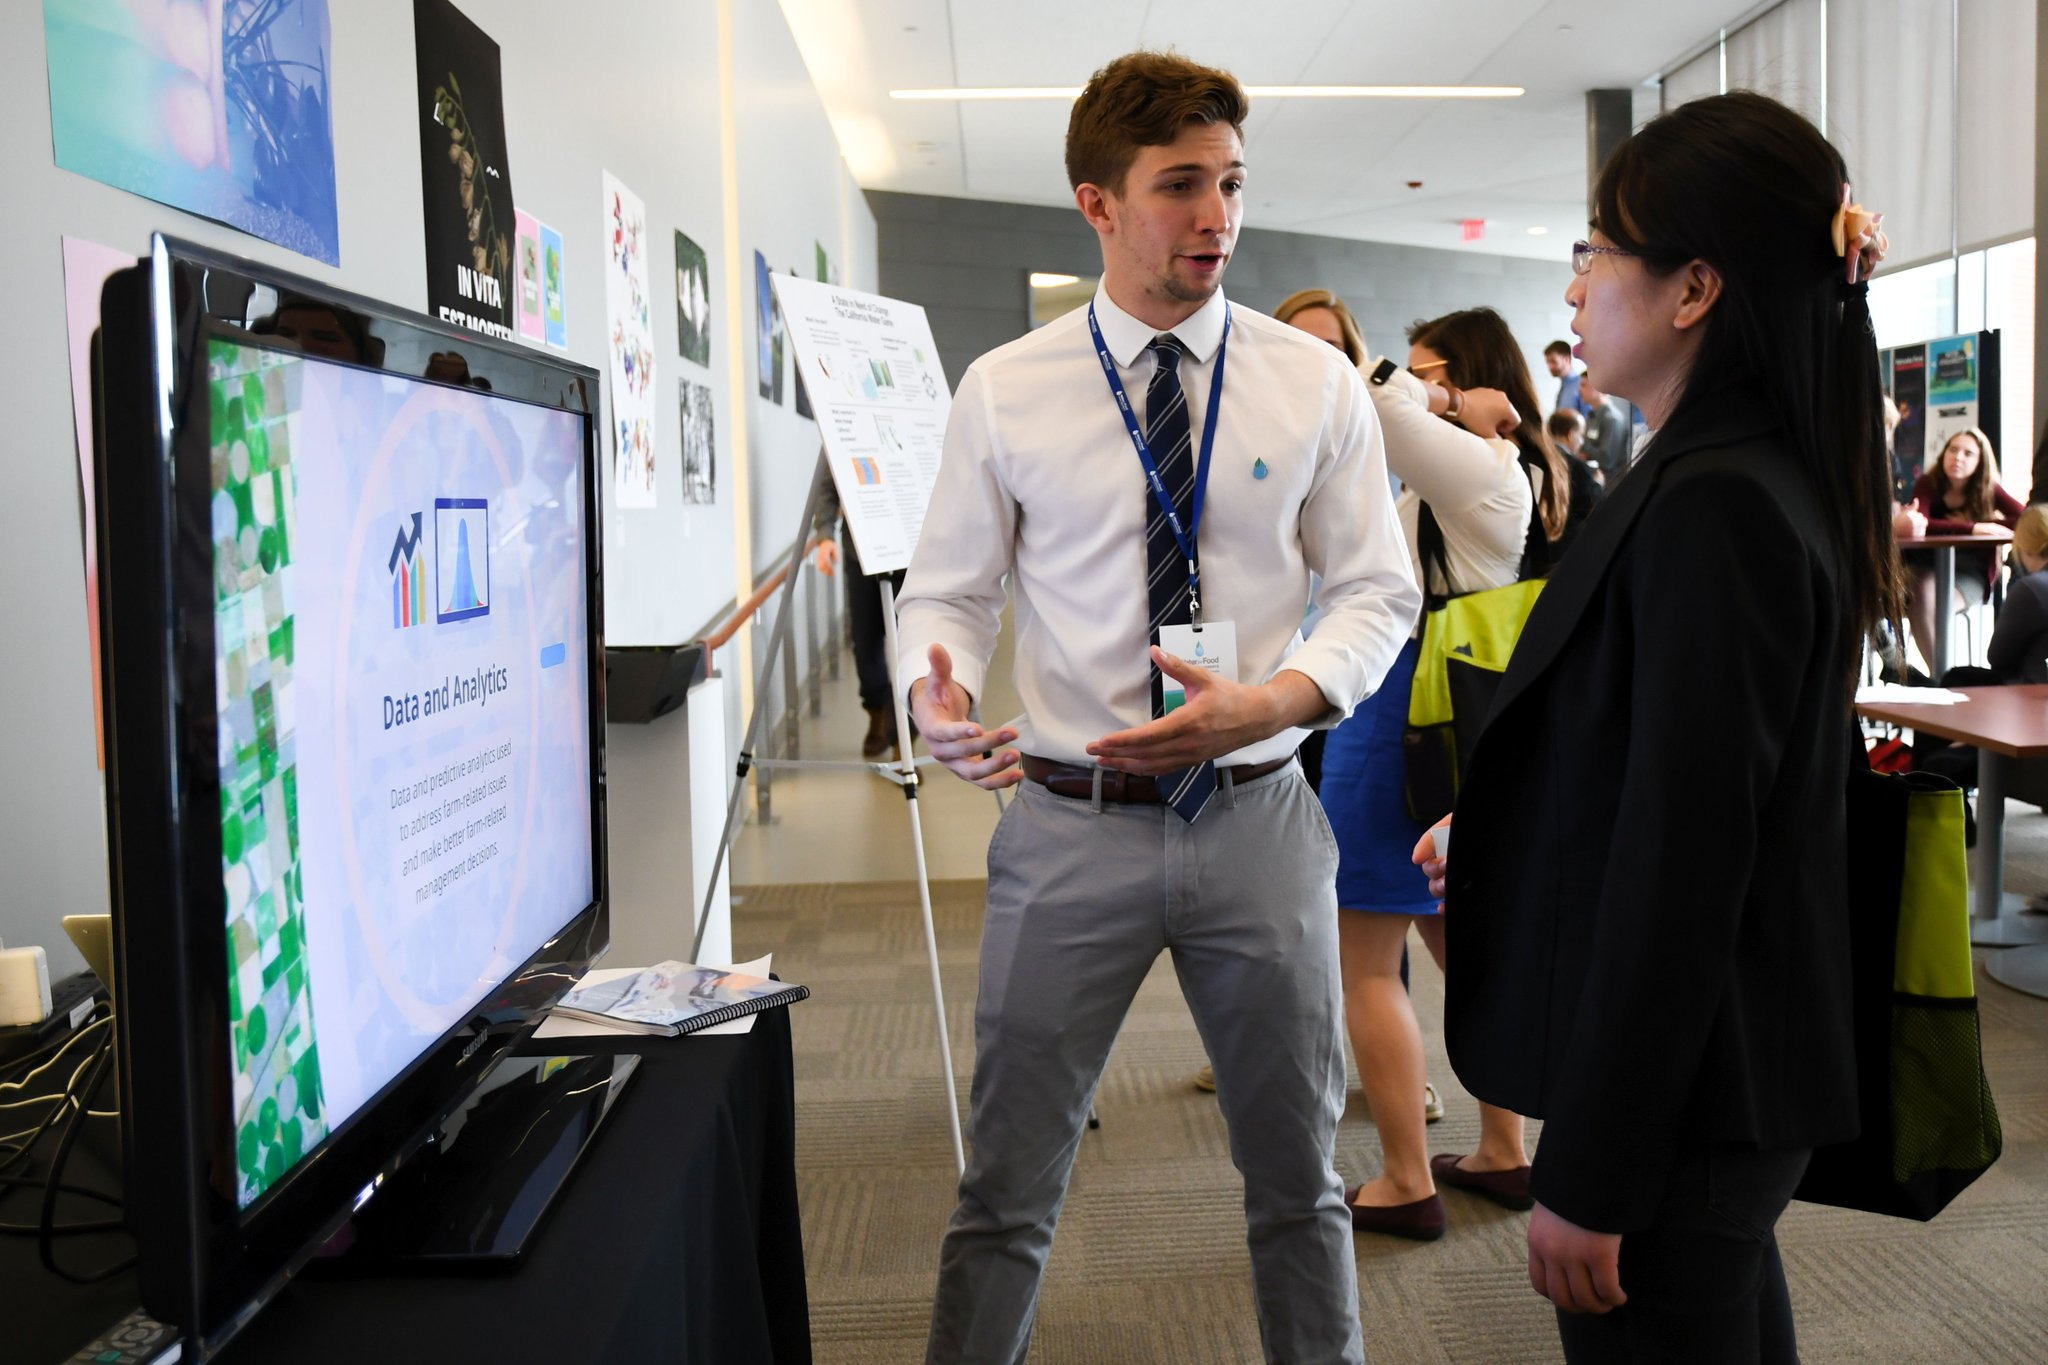 DWFI Intern Will Ruffalo shares his research during the 2017 DWFI Water for Food Global Conference. Photo Credit: Brett Hampton